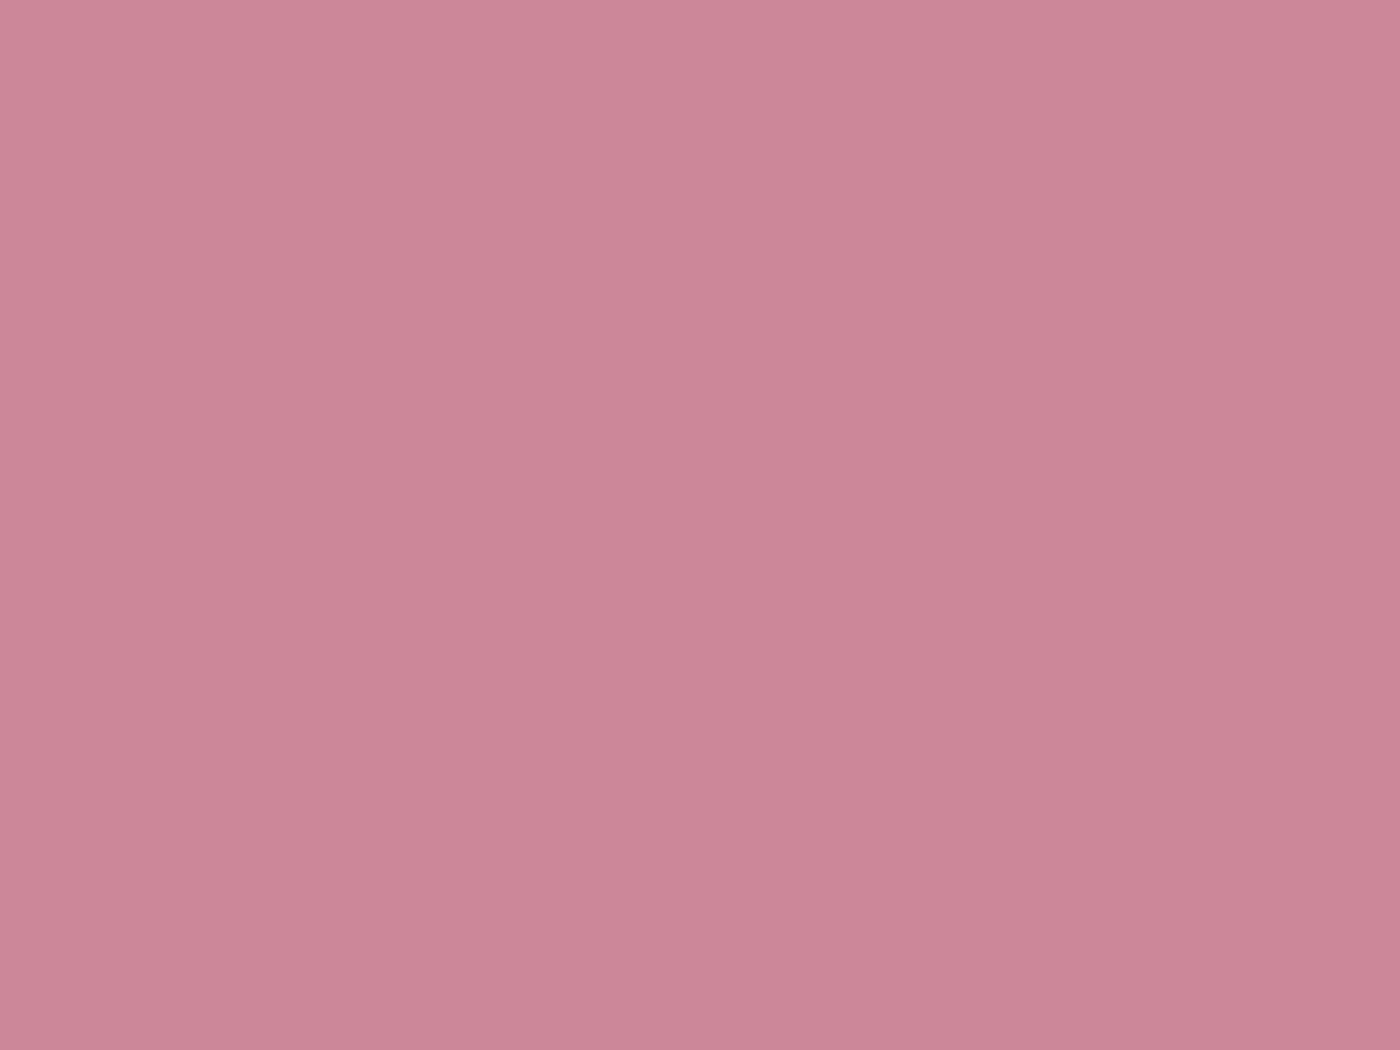 1400x1050 Puce Solid Color Background